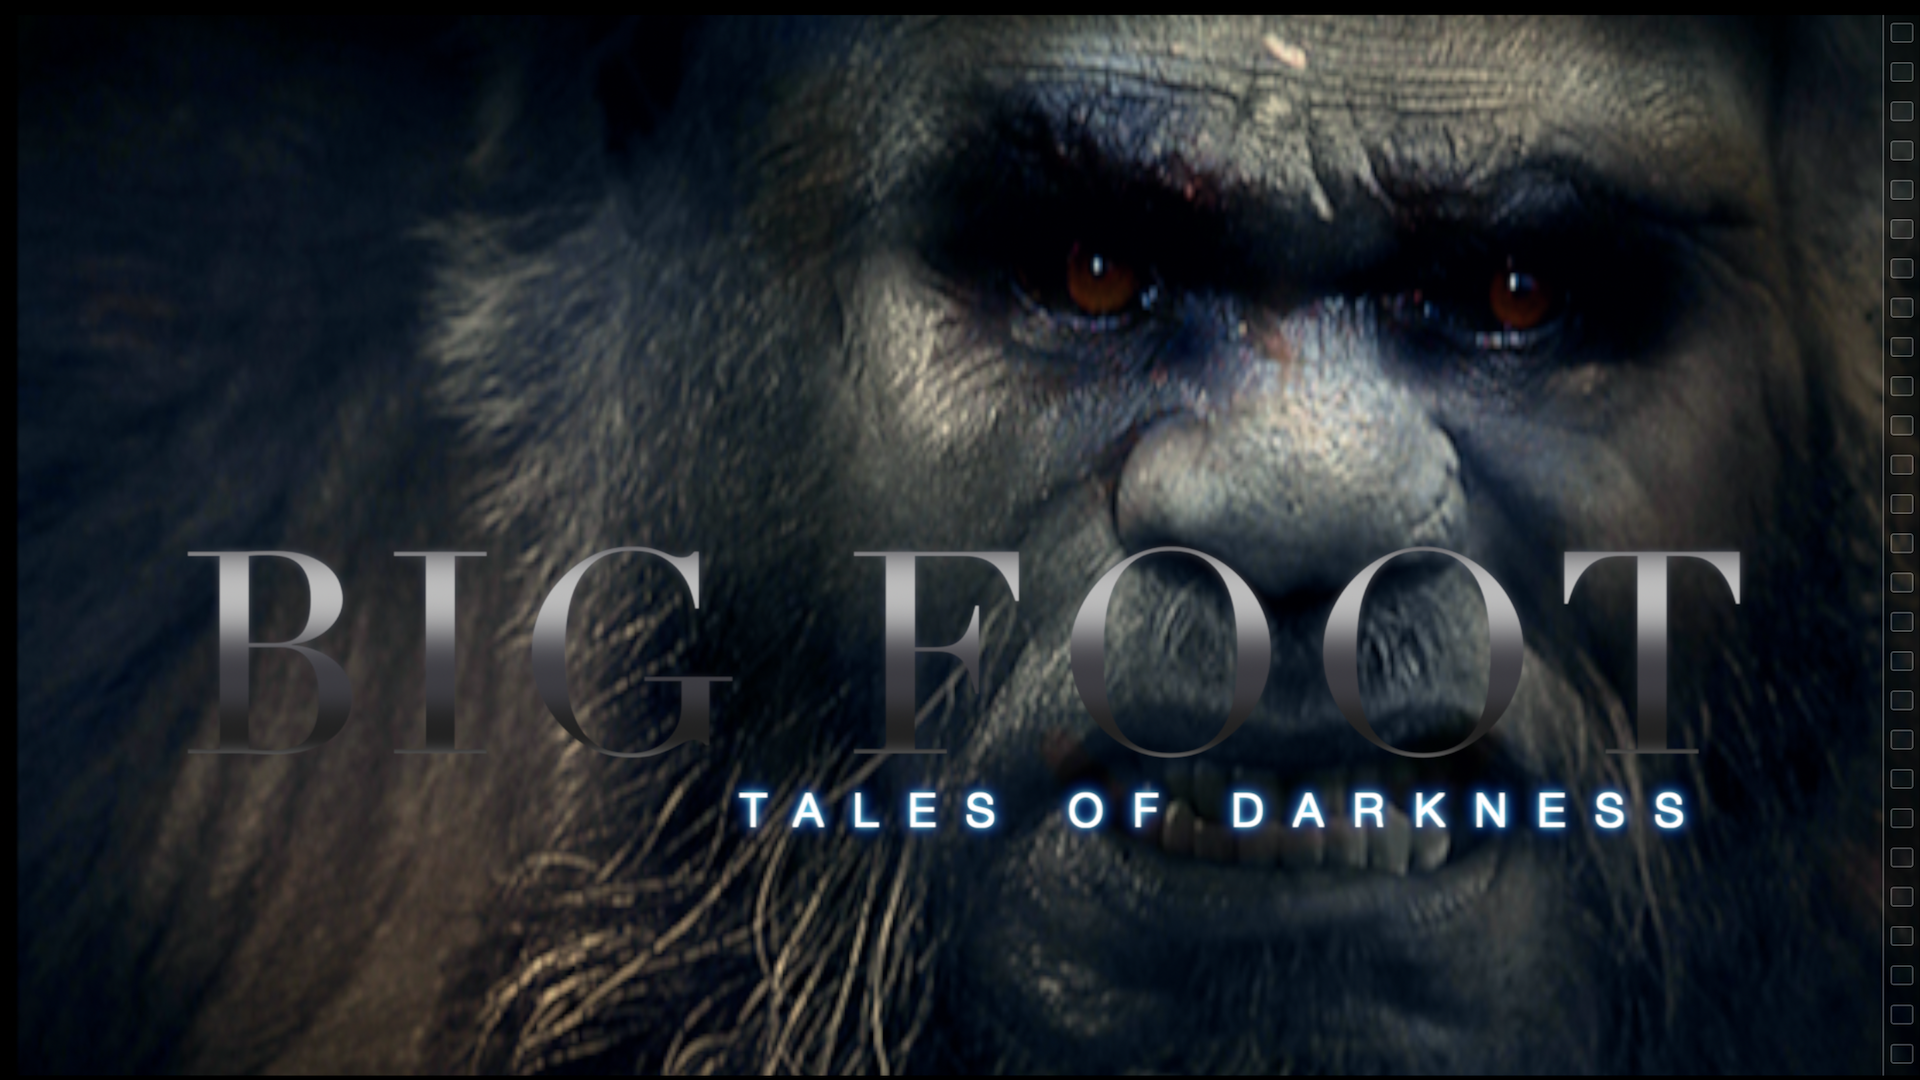 Bigfoot Tales of Darkness - Season 1